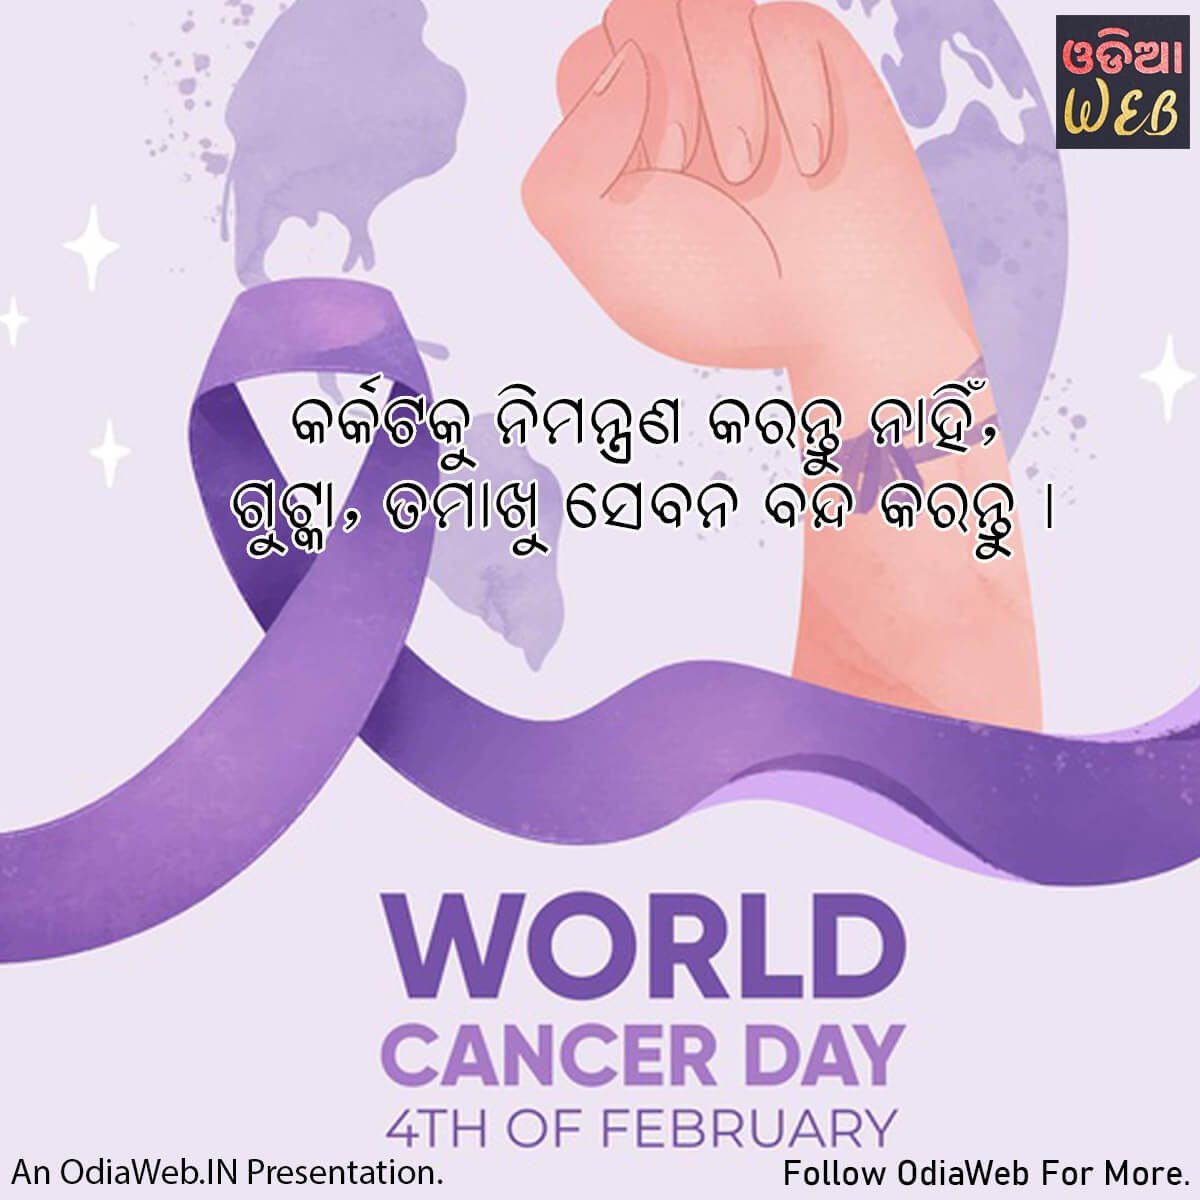 World Cancer Day Message2